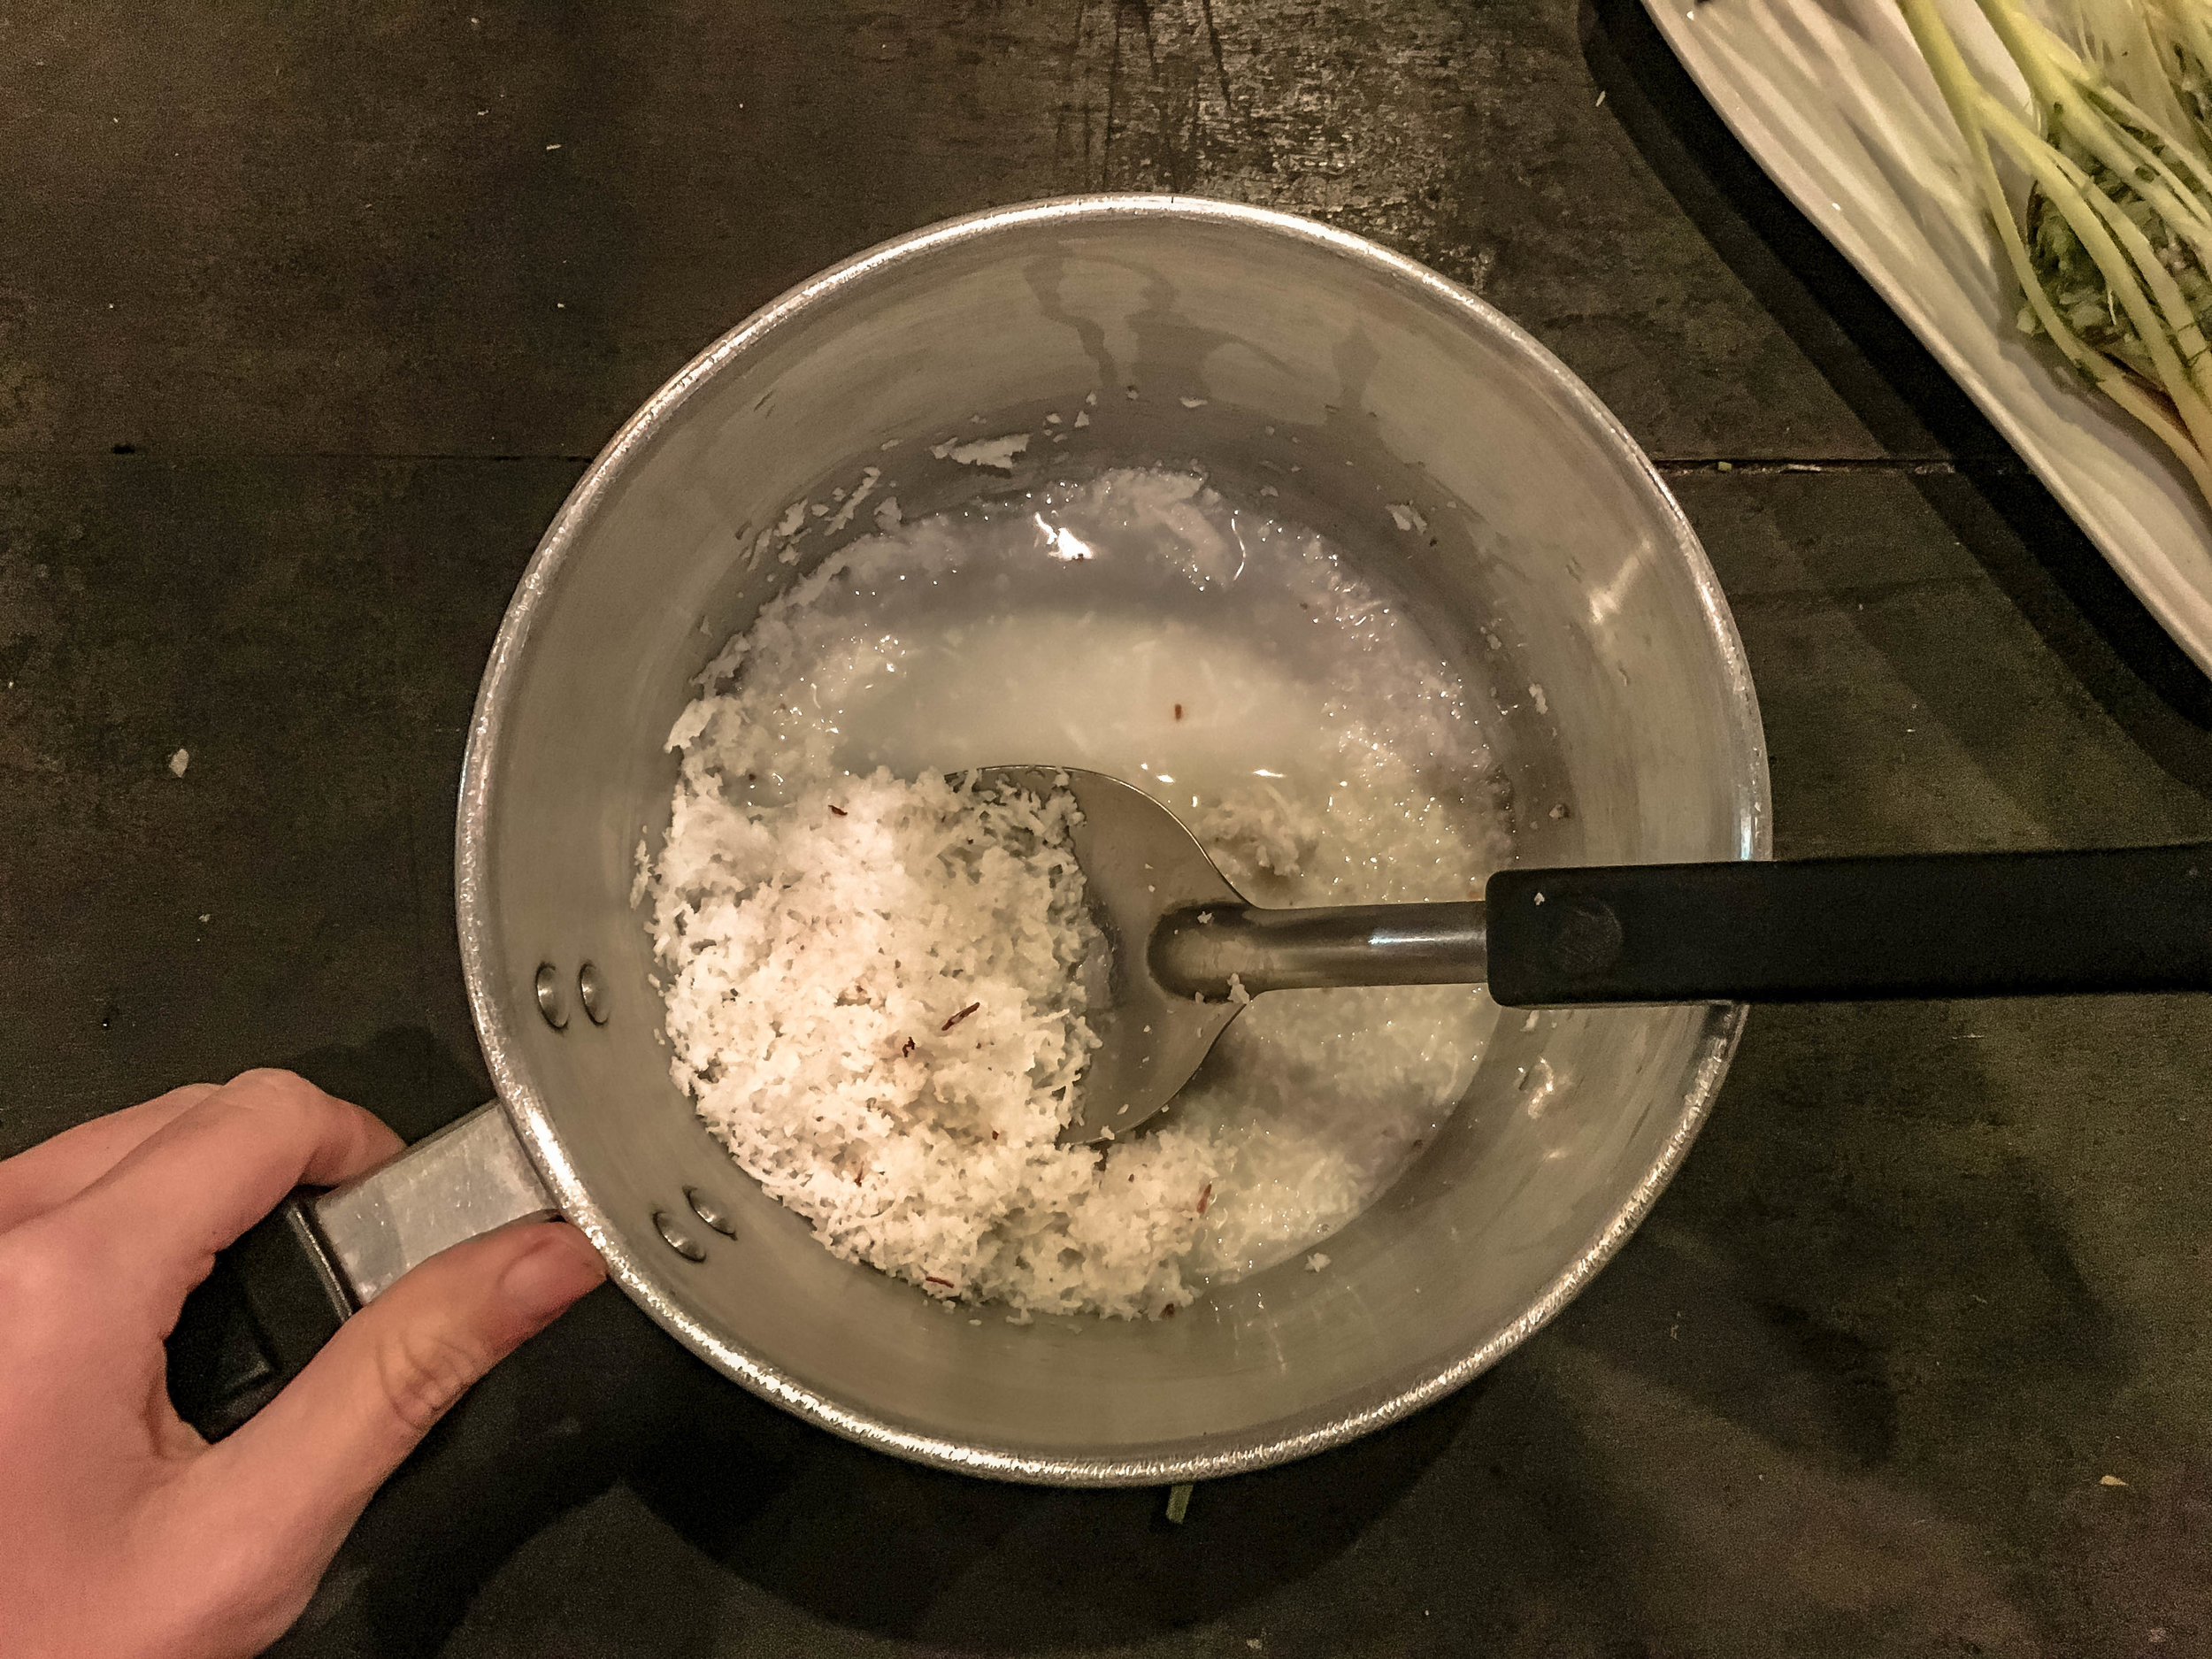 MIXING SHREDDED COCONUT WITH HOT WATER TO CREATE OUR OWN COCONUT MILK